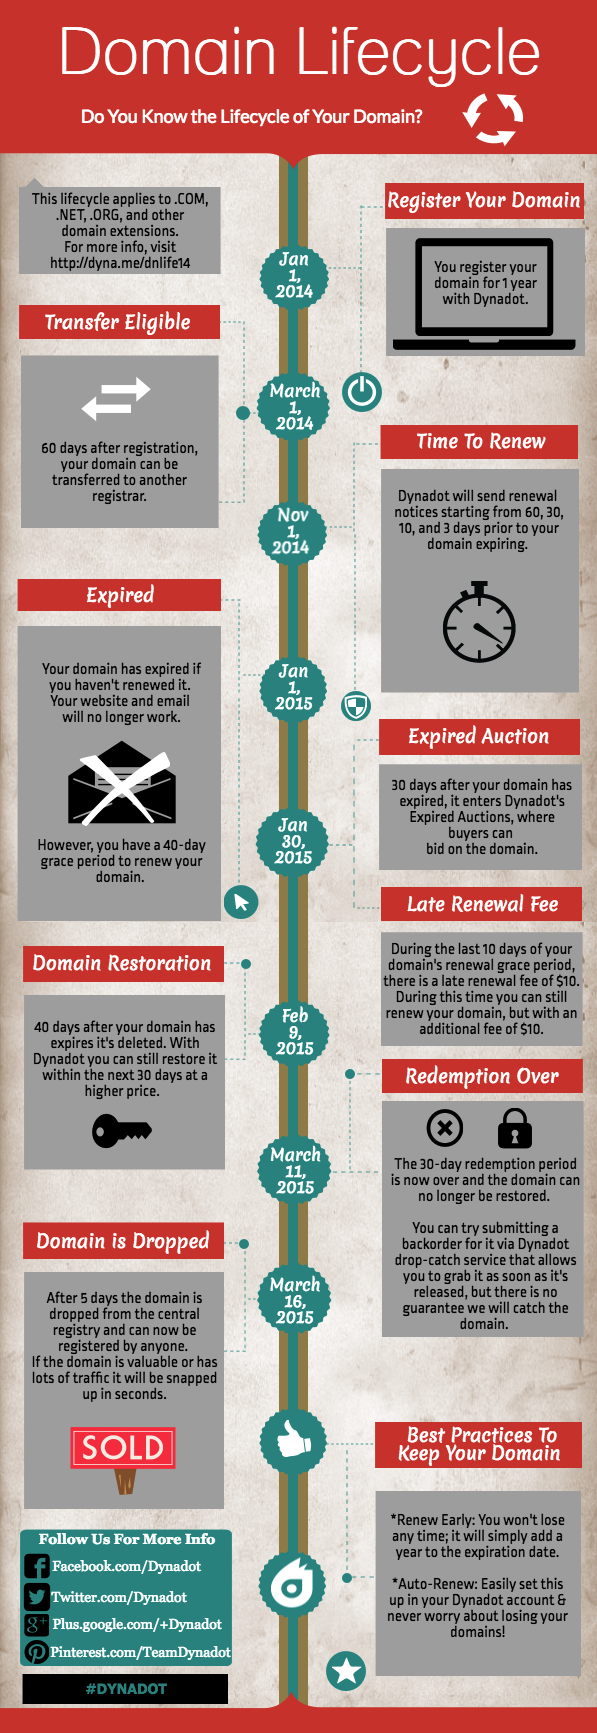 Domain Life Cycle Infographic - Domain Registration, Expiration, Renewal, Redemption